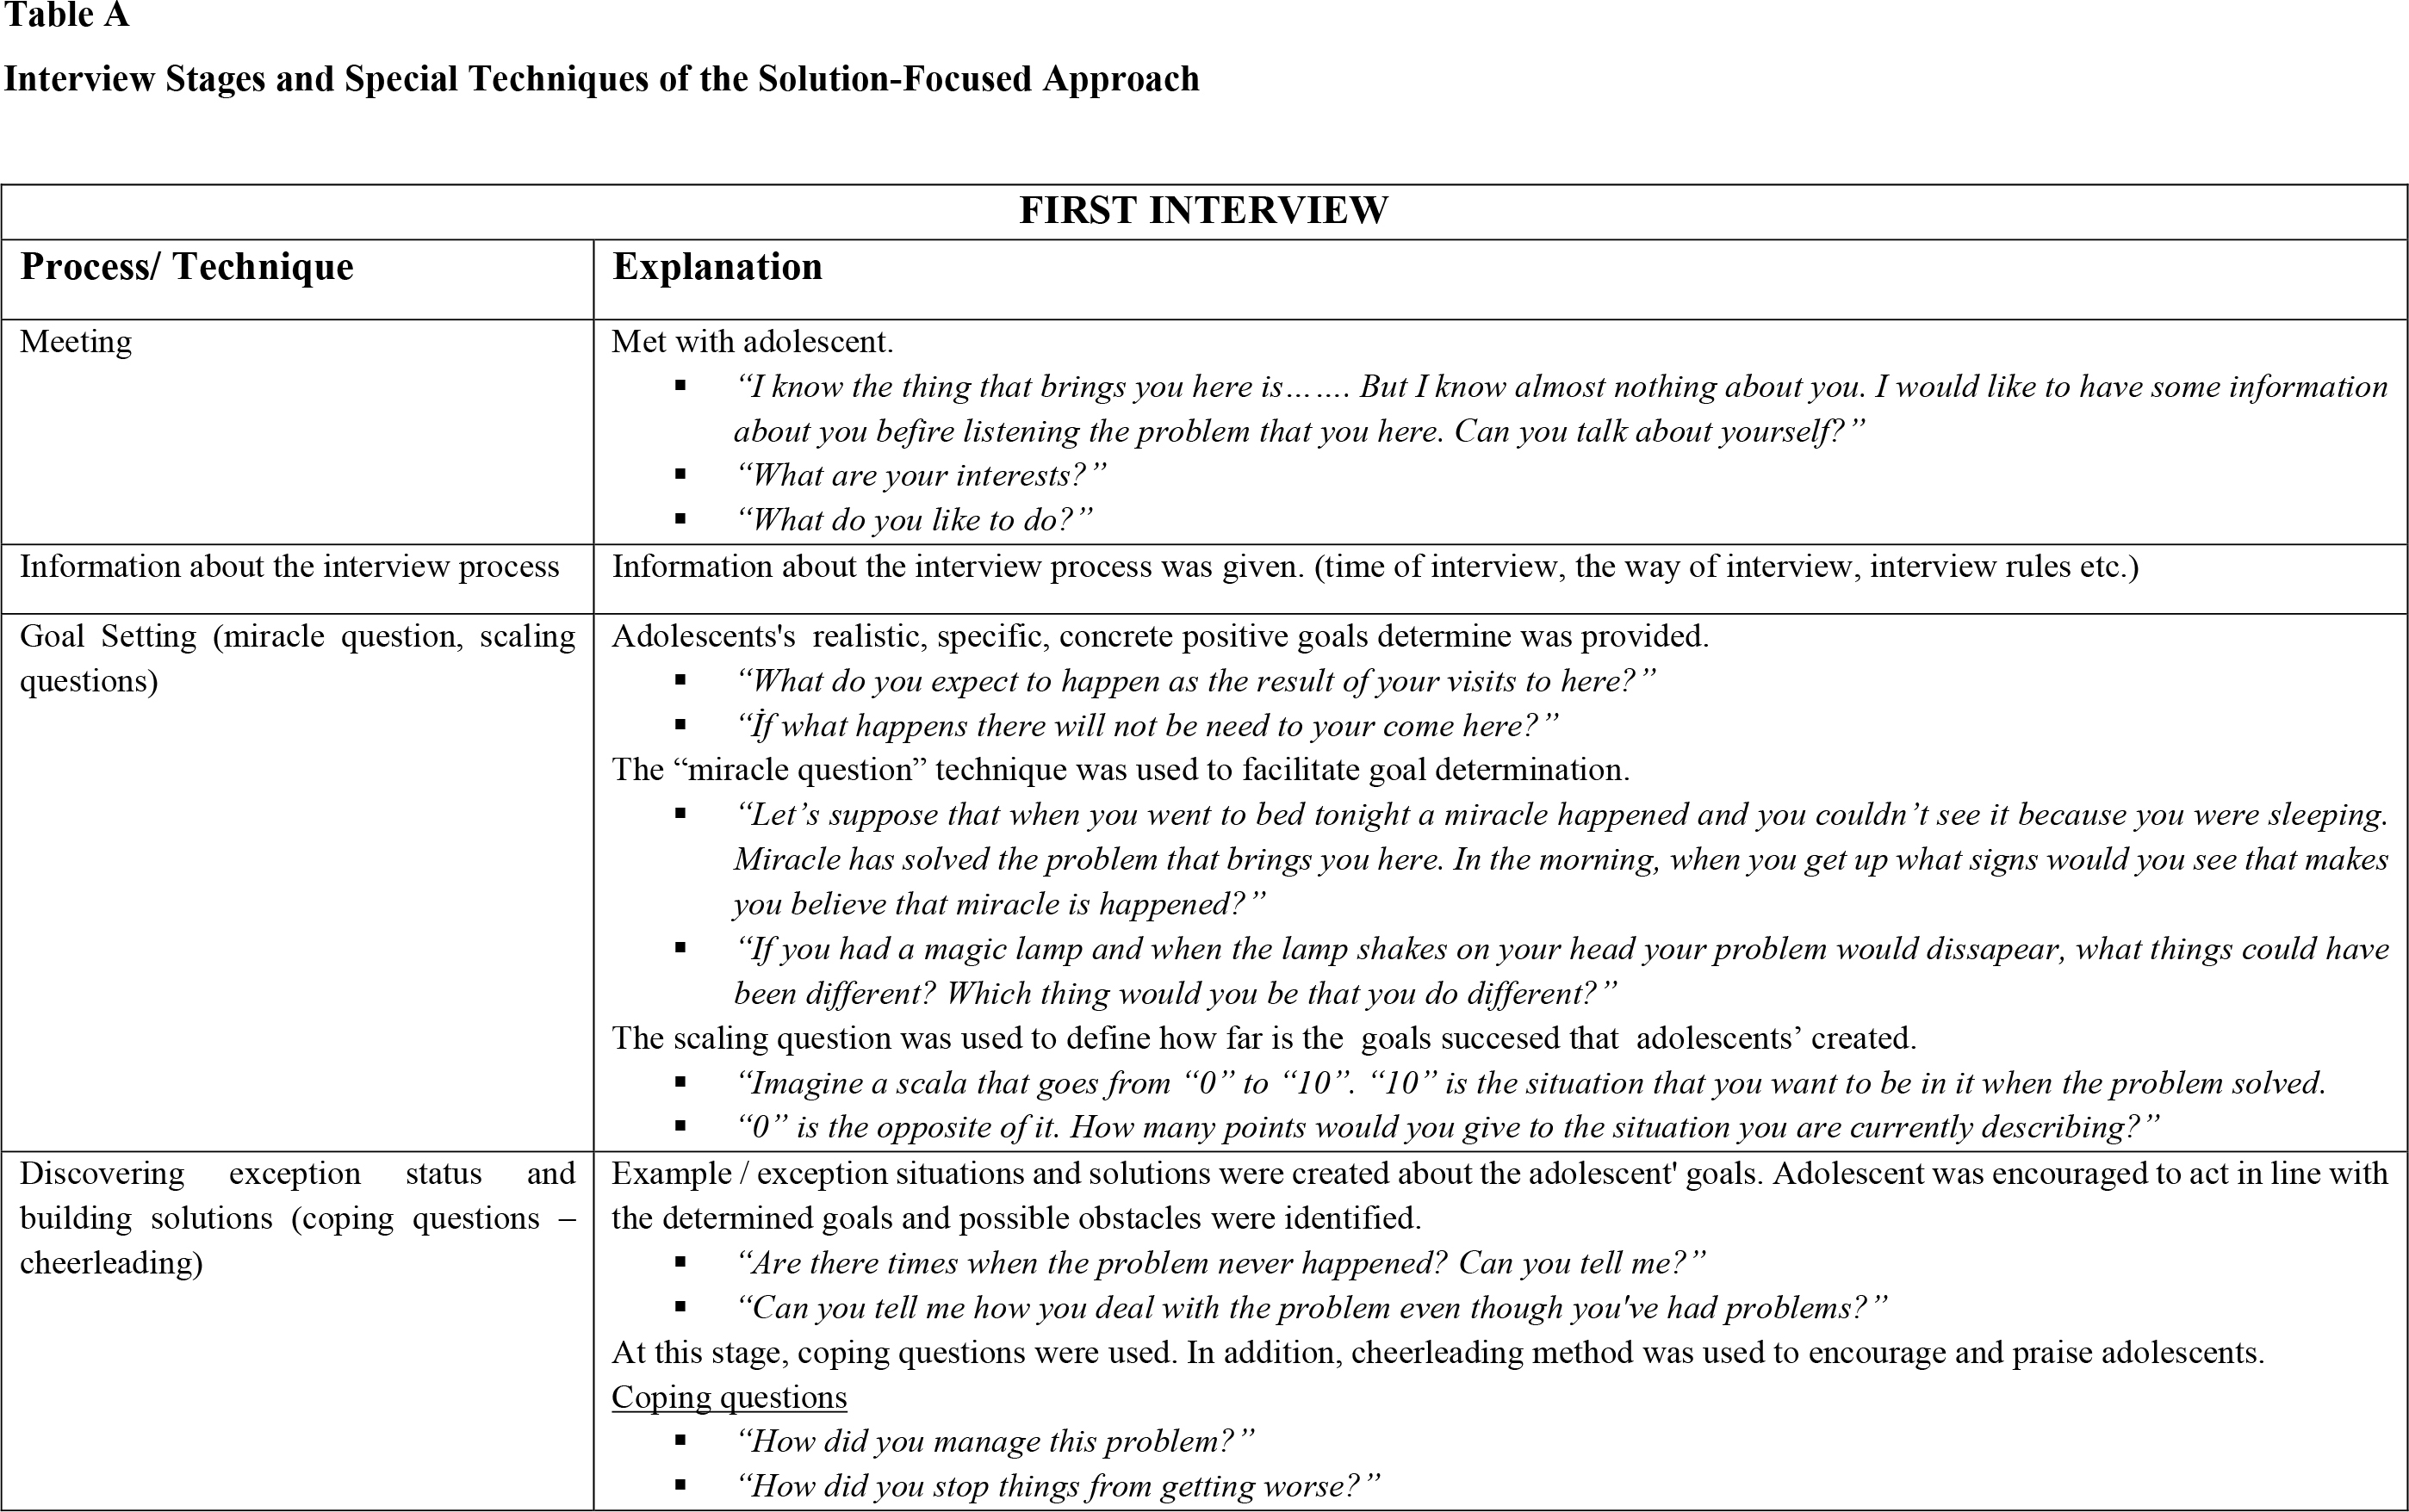 Interview Stages and Special Techniques of the Solution-Focused Approach